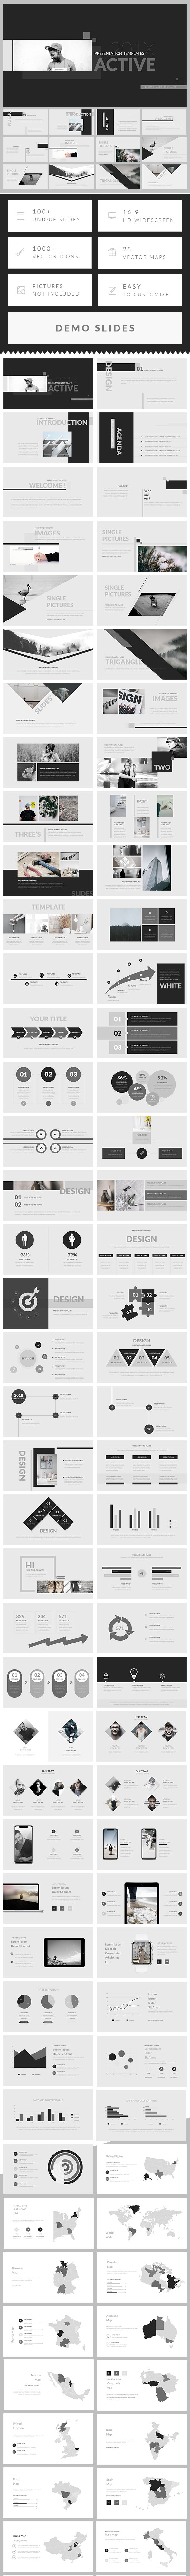 Active - PowerPoint Presentation Template - Business PowerPoint Templates